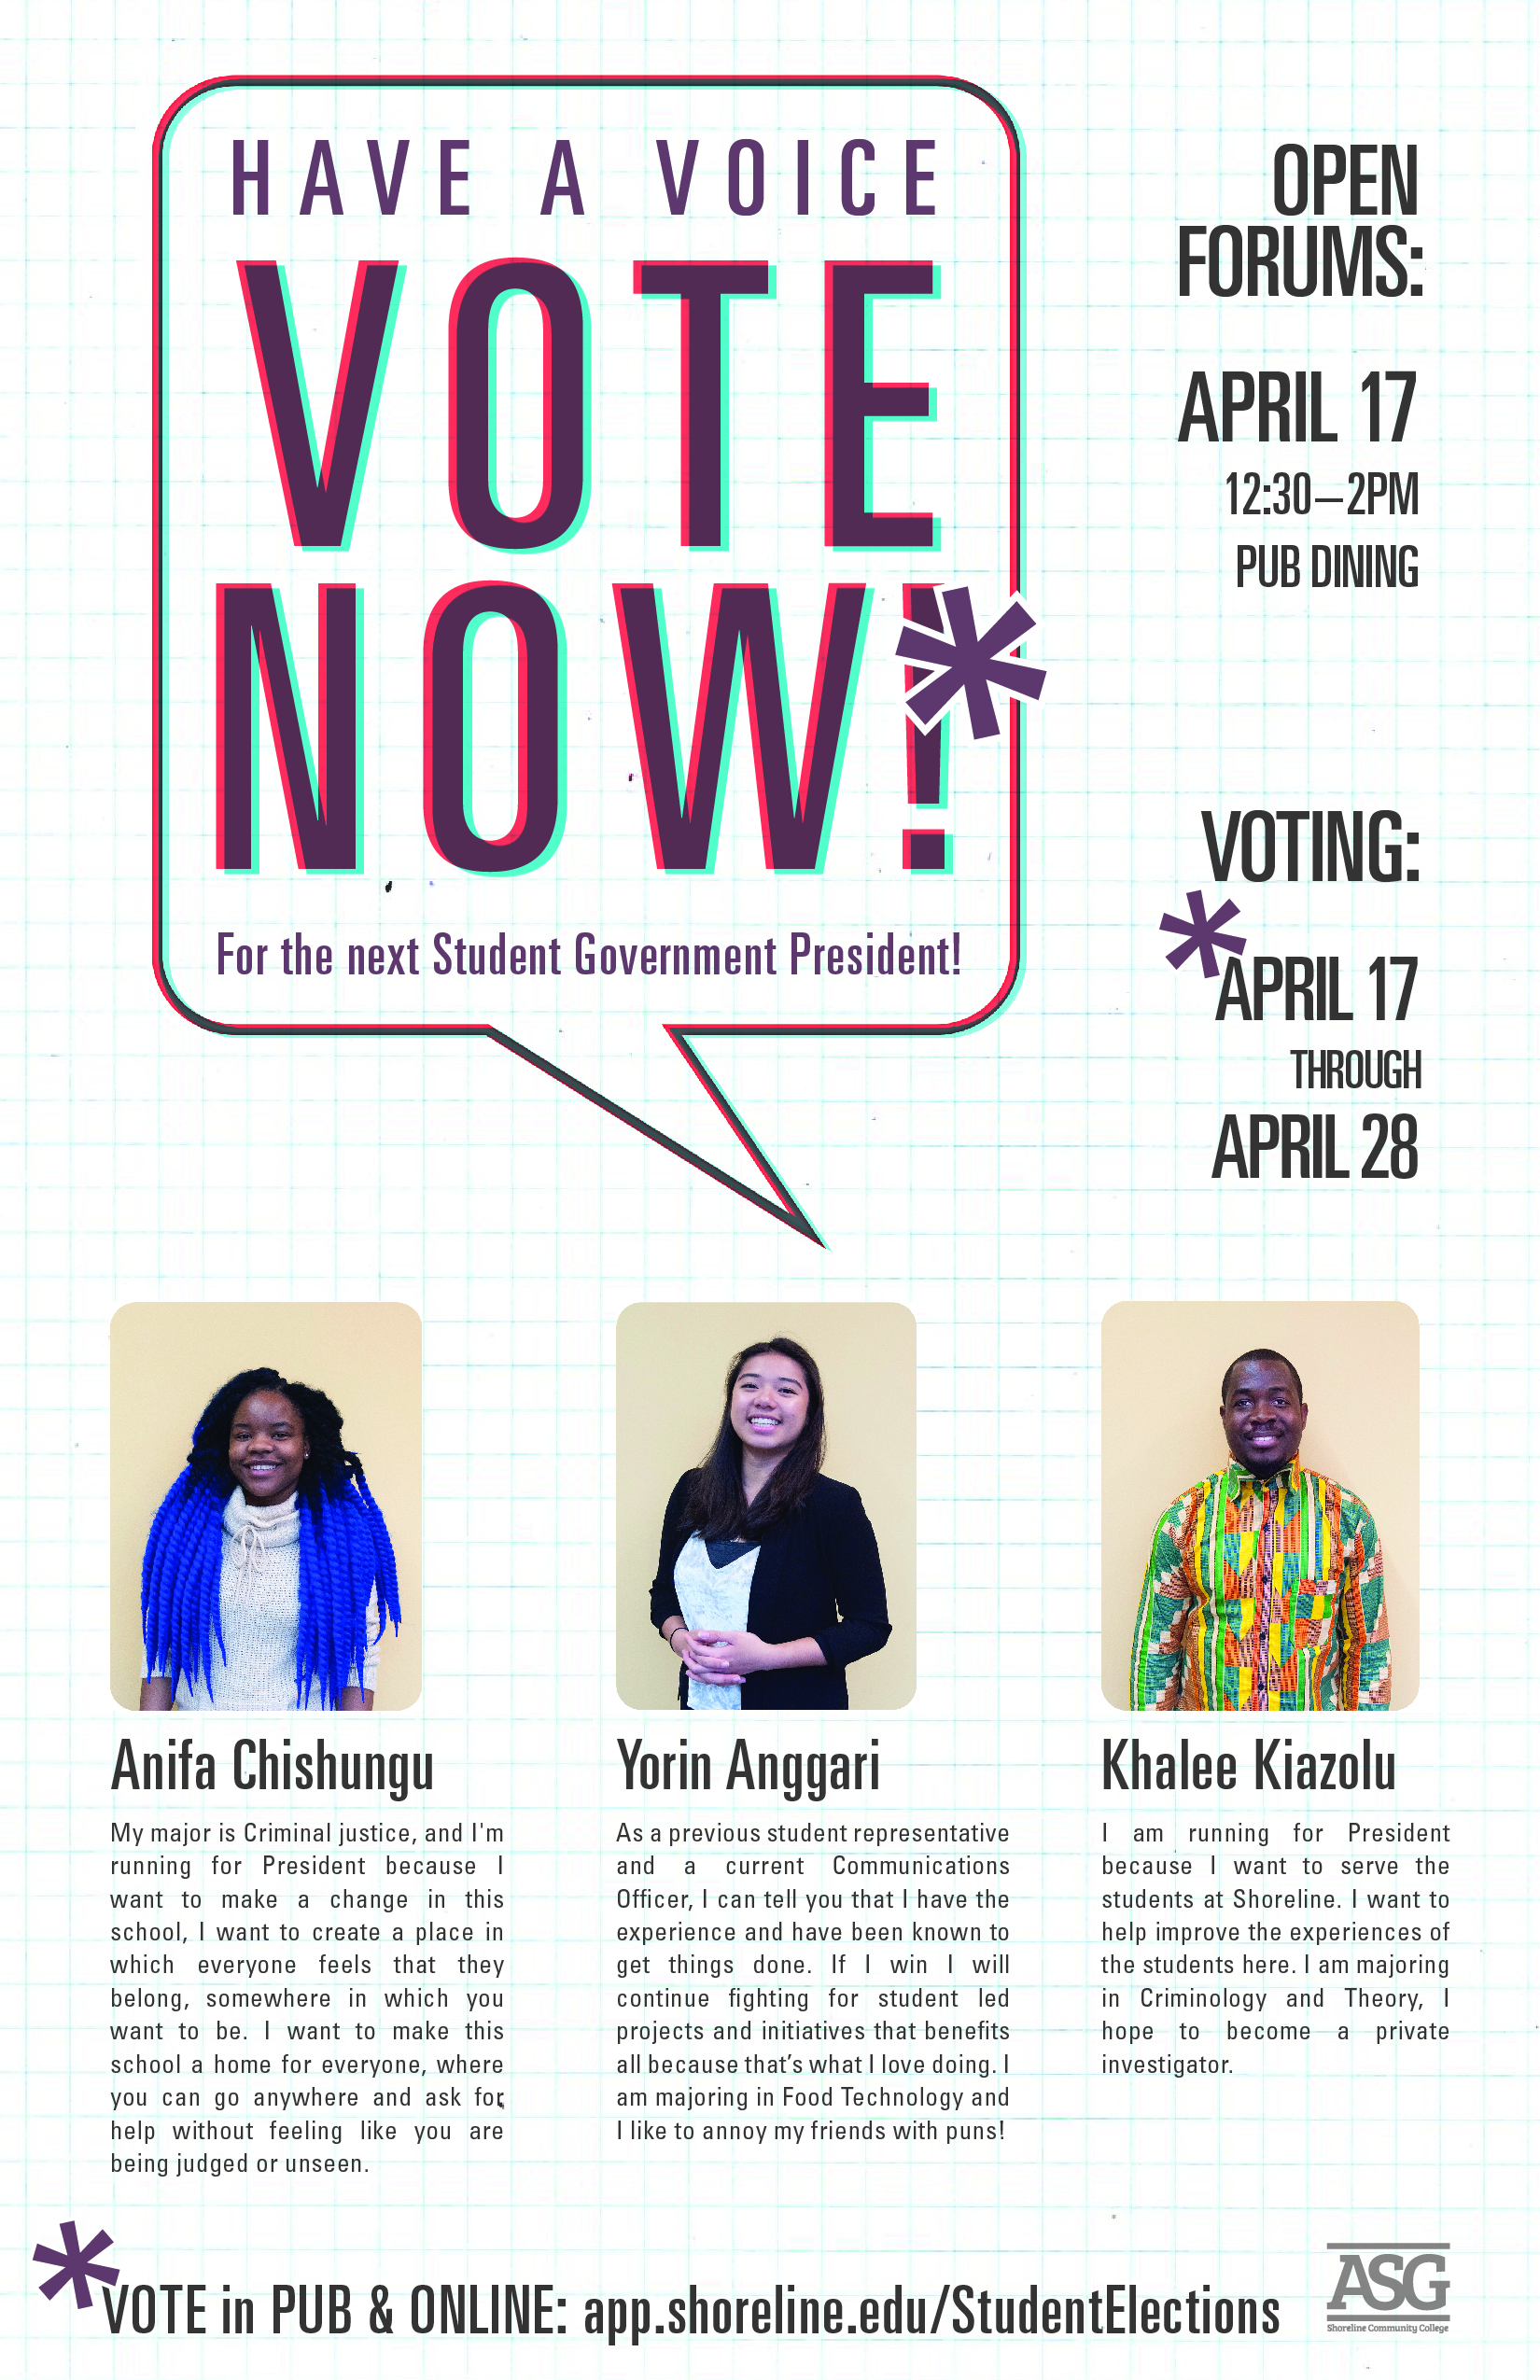 Vote Now for the Next Student President